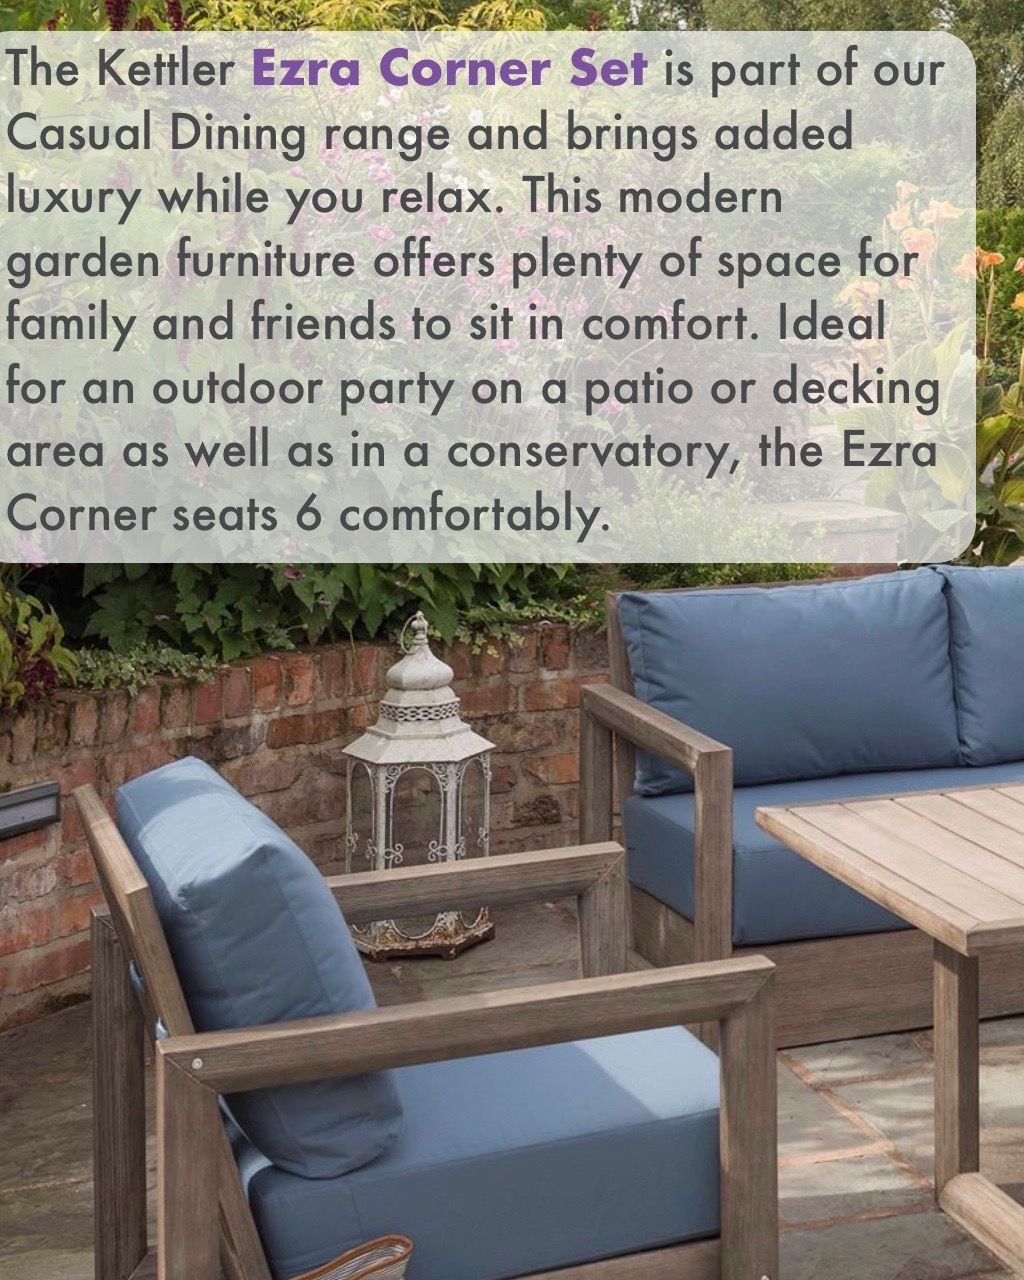 Perfect For Indoors Out Here At Oaktree We Offer Support Every Step Of The Way From Free U With Images Modern Garden Furniture Garden Furniture Garden Furniture Sets